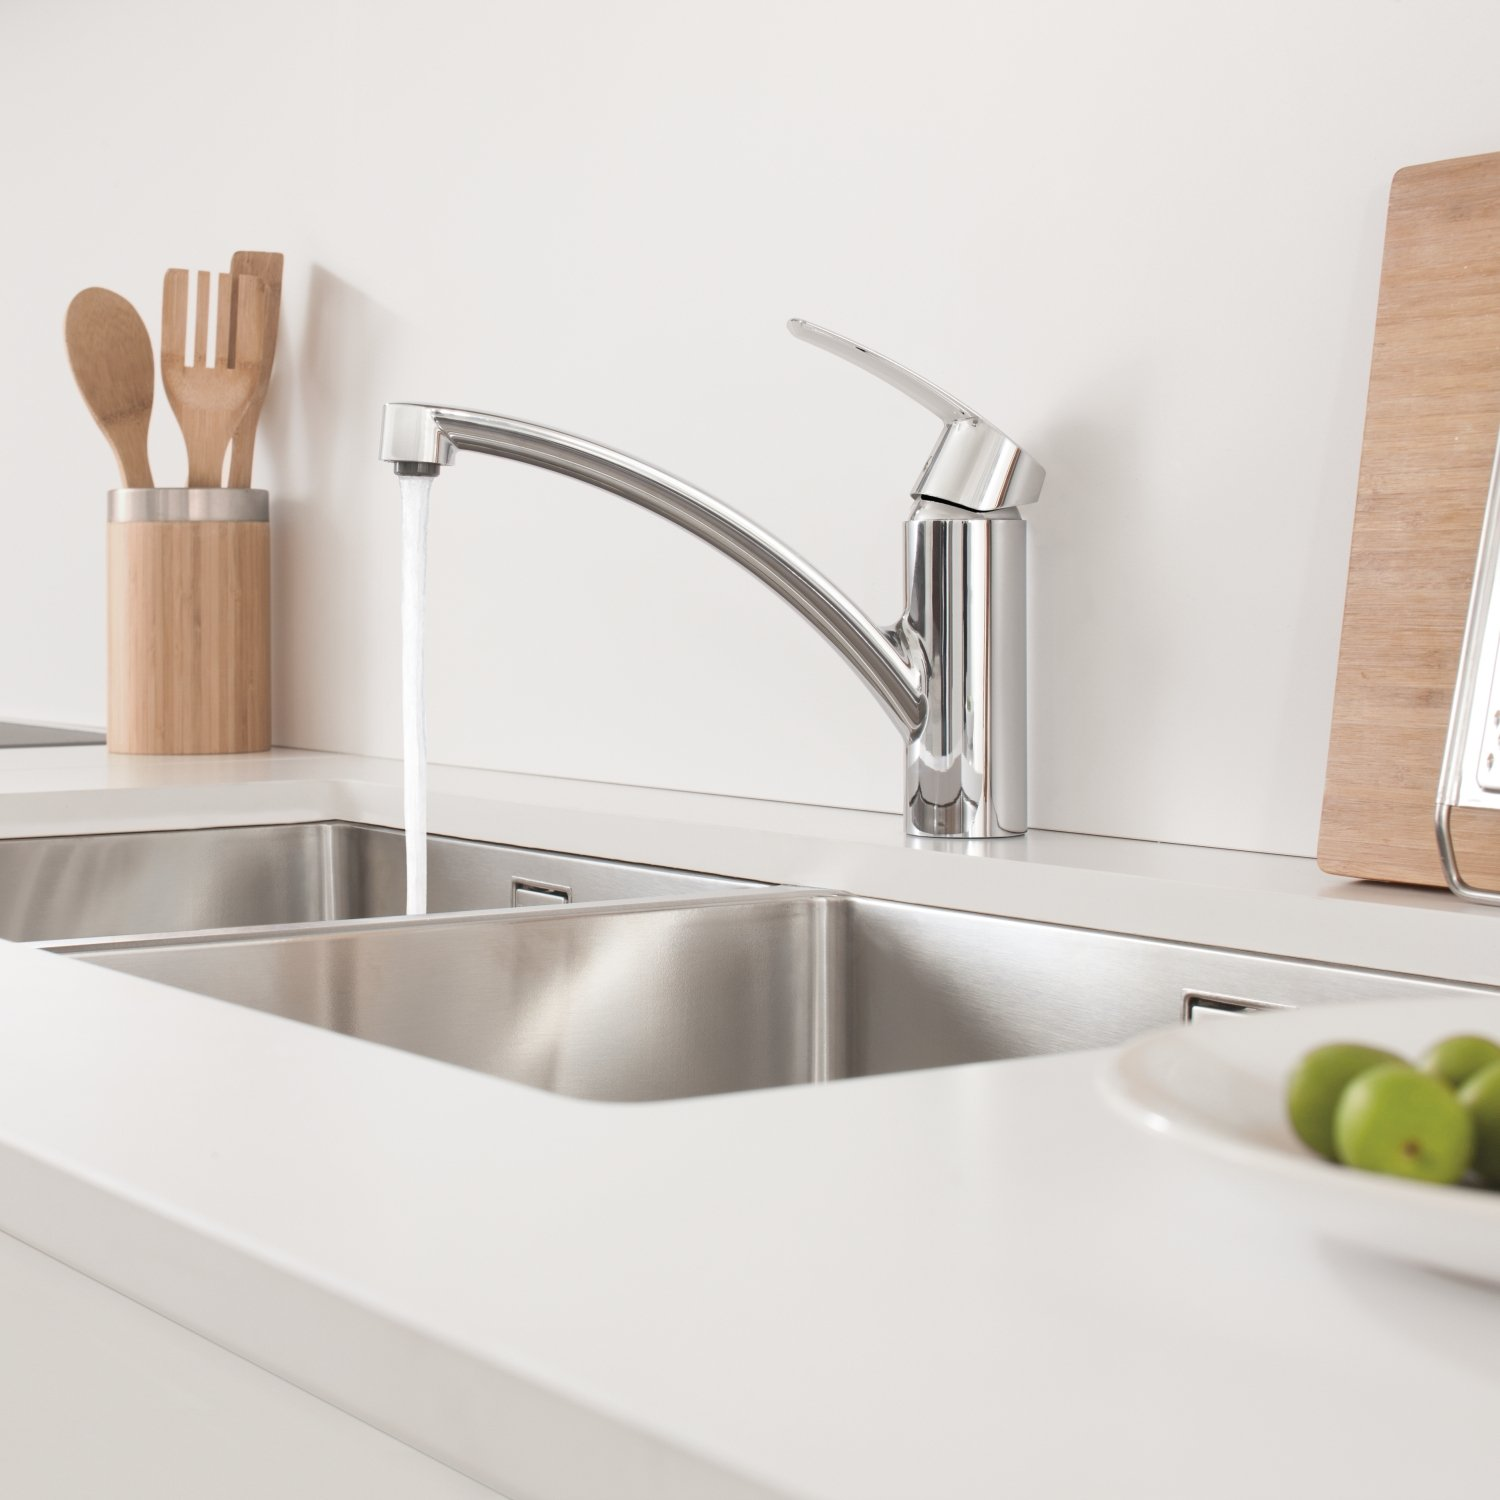 GROHE 32441001 | Start Kitchen Tap by GROHE (Image #4)